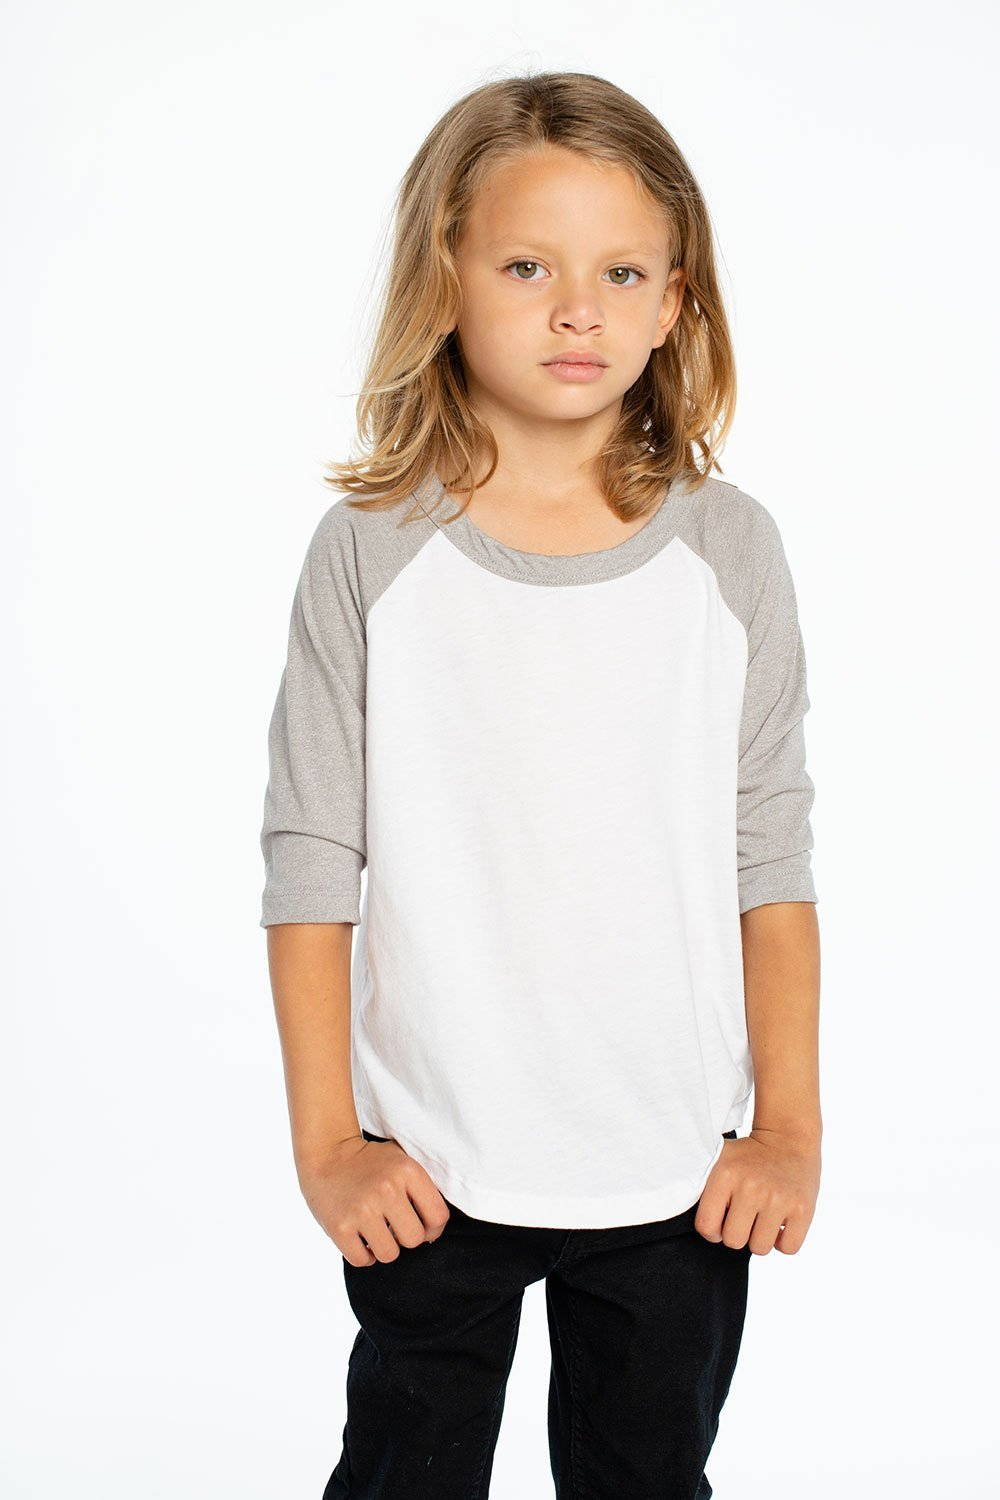 7f279ad8 ... Load image into Gallery viewer, Vintage Jersey 3/4 Sleeve Raglan  Baseball Tee by · Chaser Kids